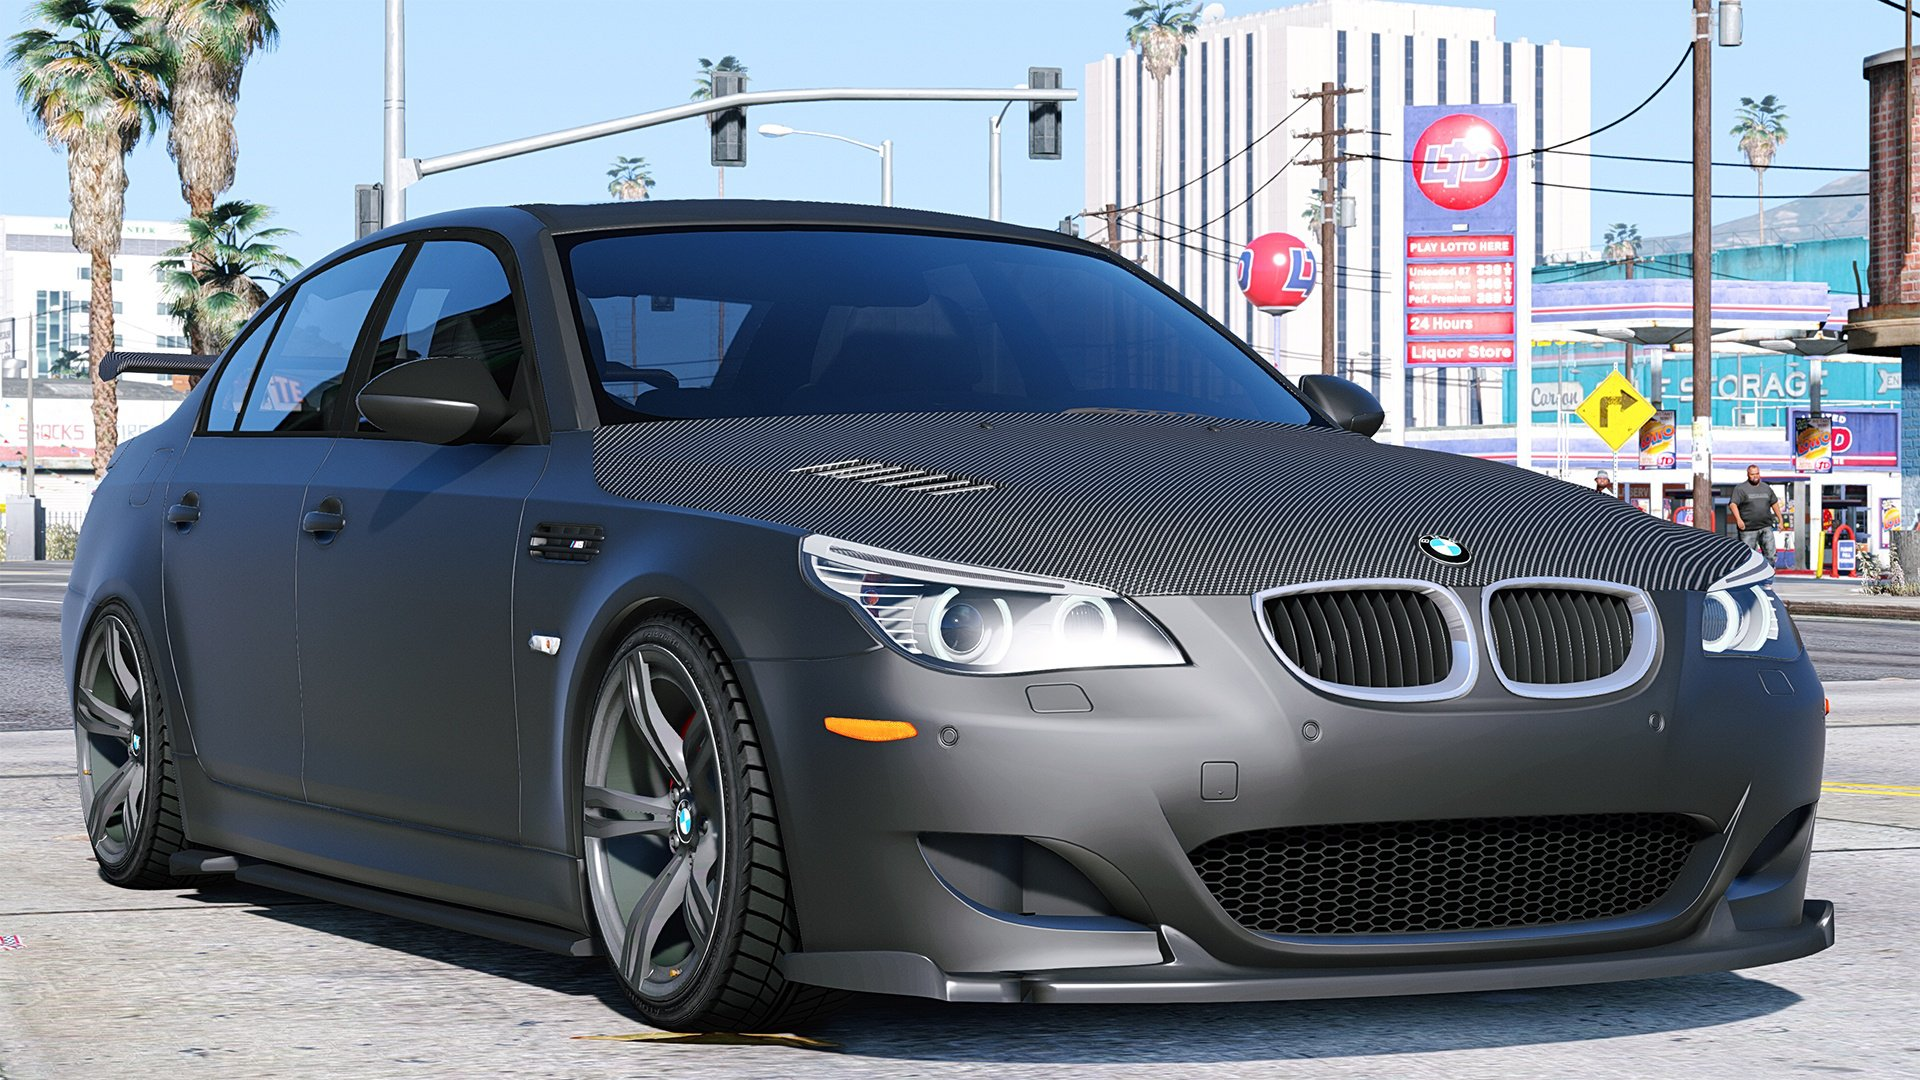 bmw m5 e60 v hicules t l chargements gta 5. Black Bedroom Furniture Sets. Home Design Ideas